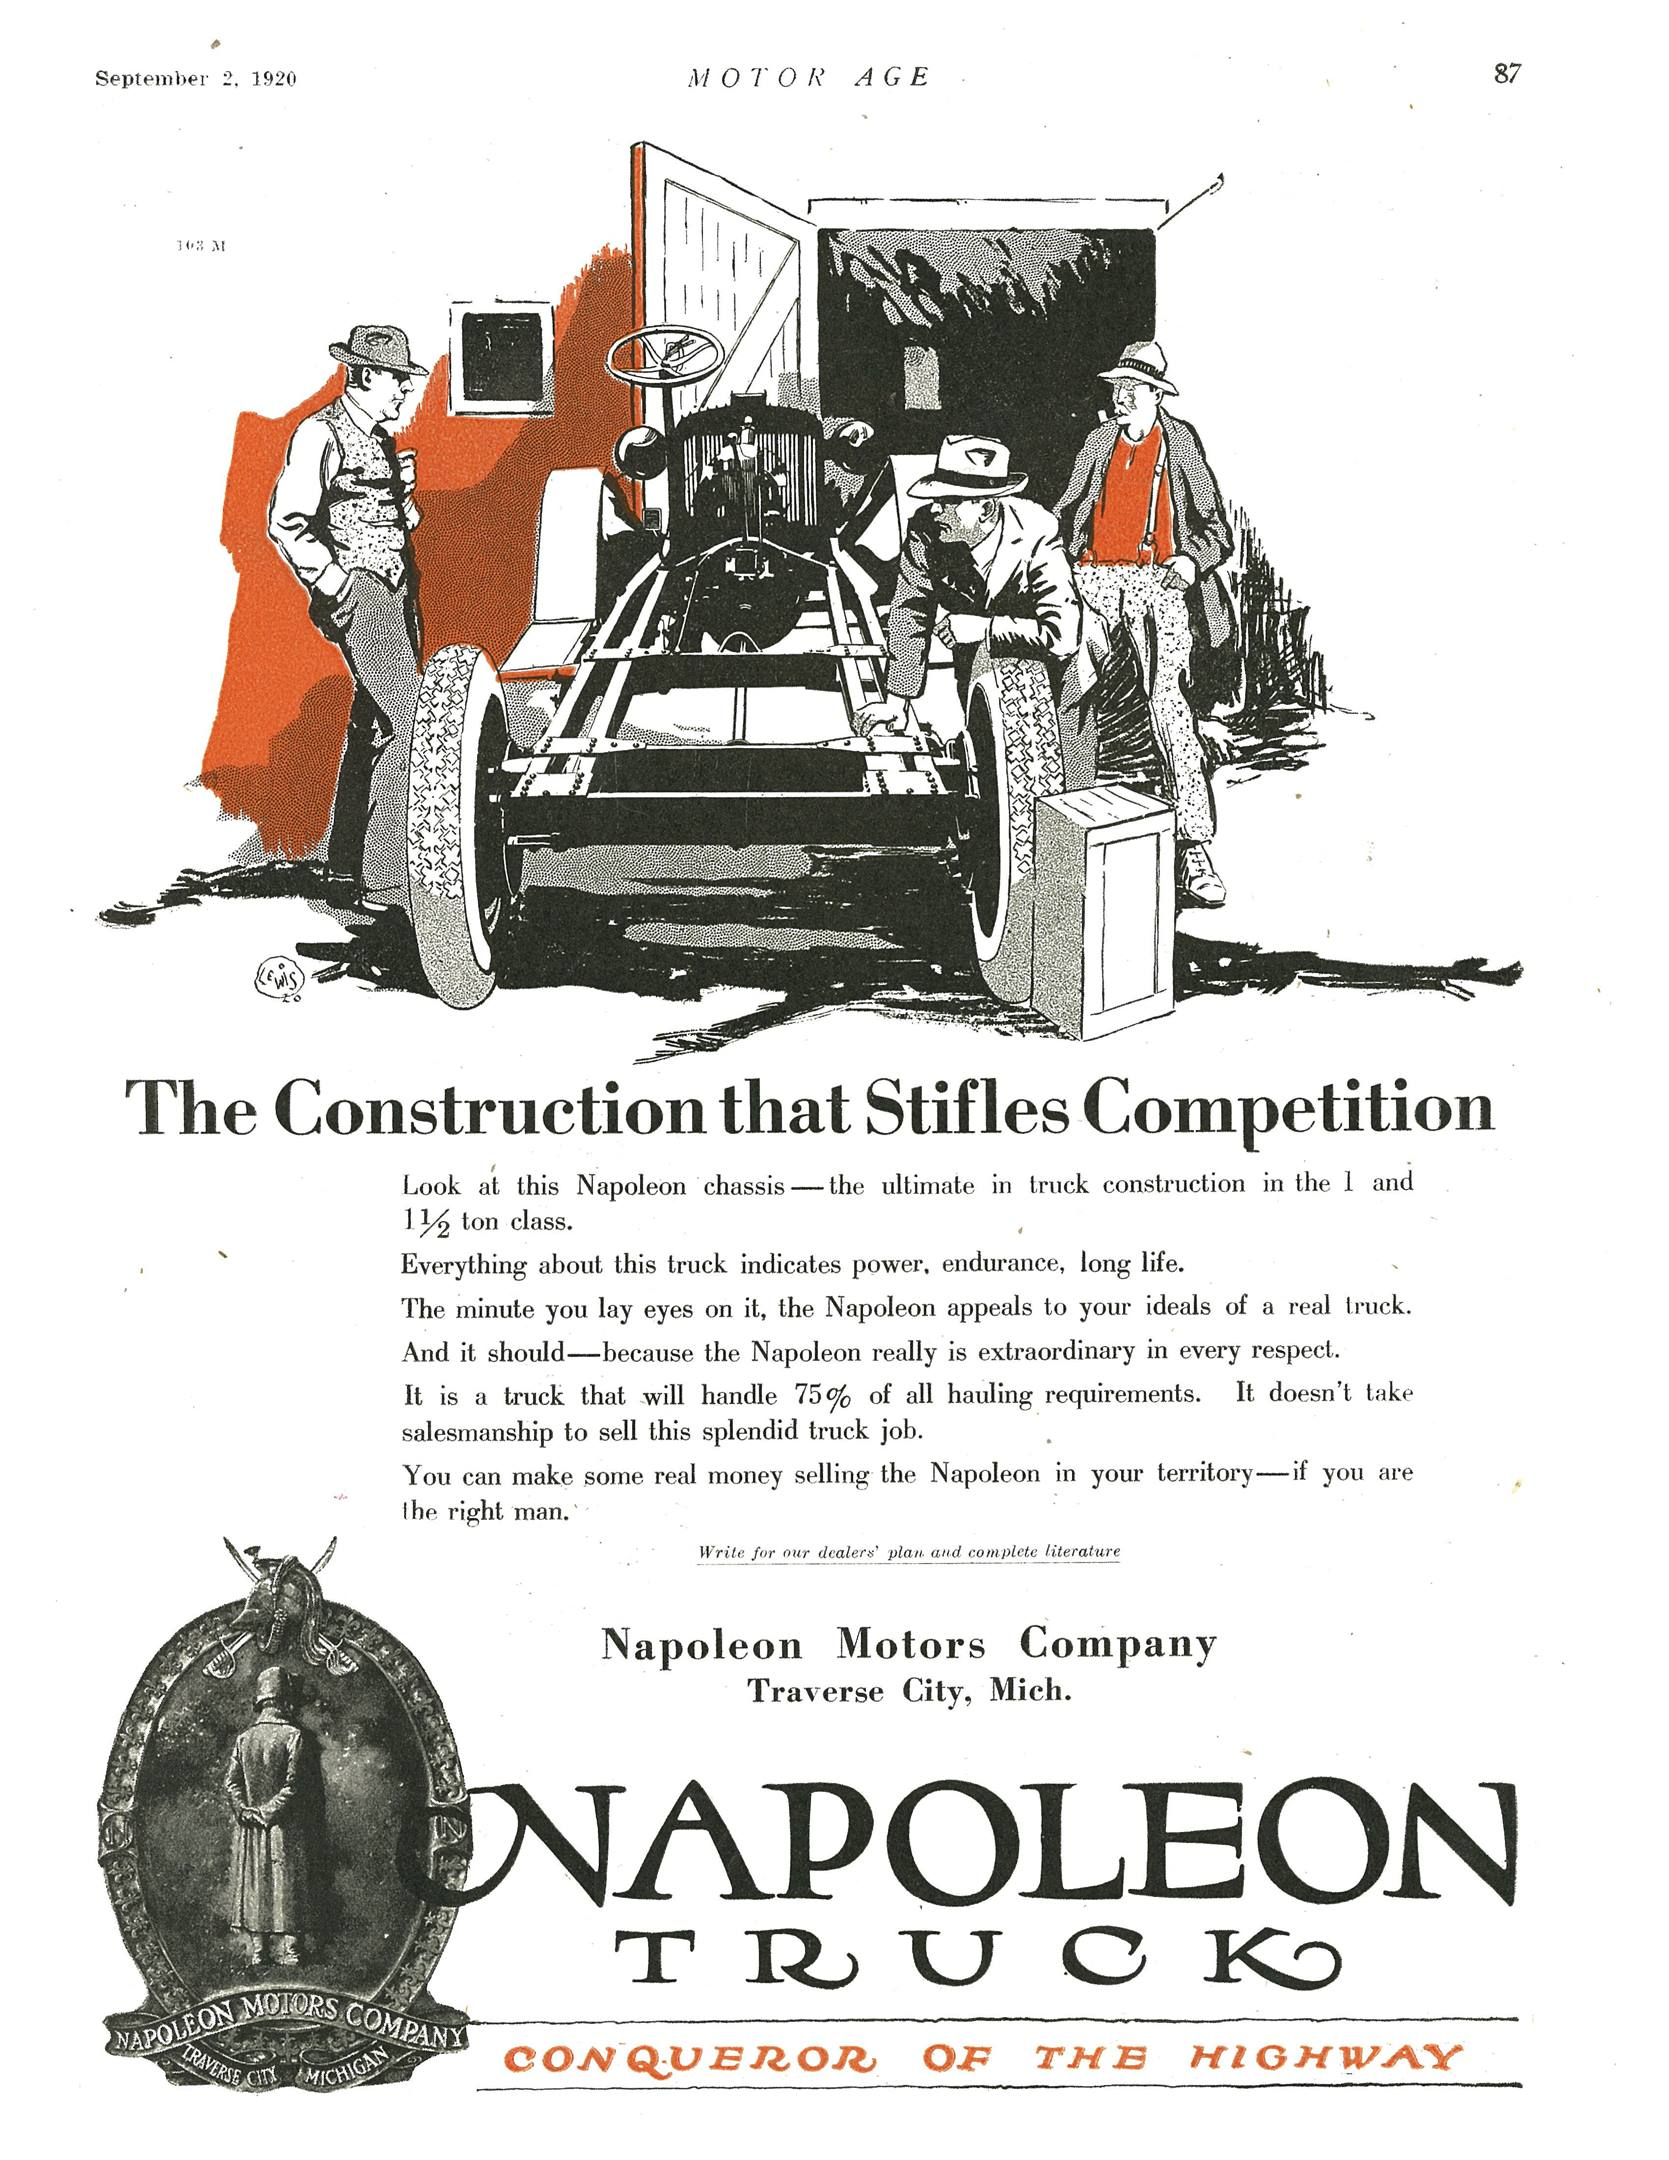 """A 1920 ad in Motor Age magazine featuring the Napoleon Truck, """"Conqueror of the Highway"""""""